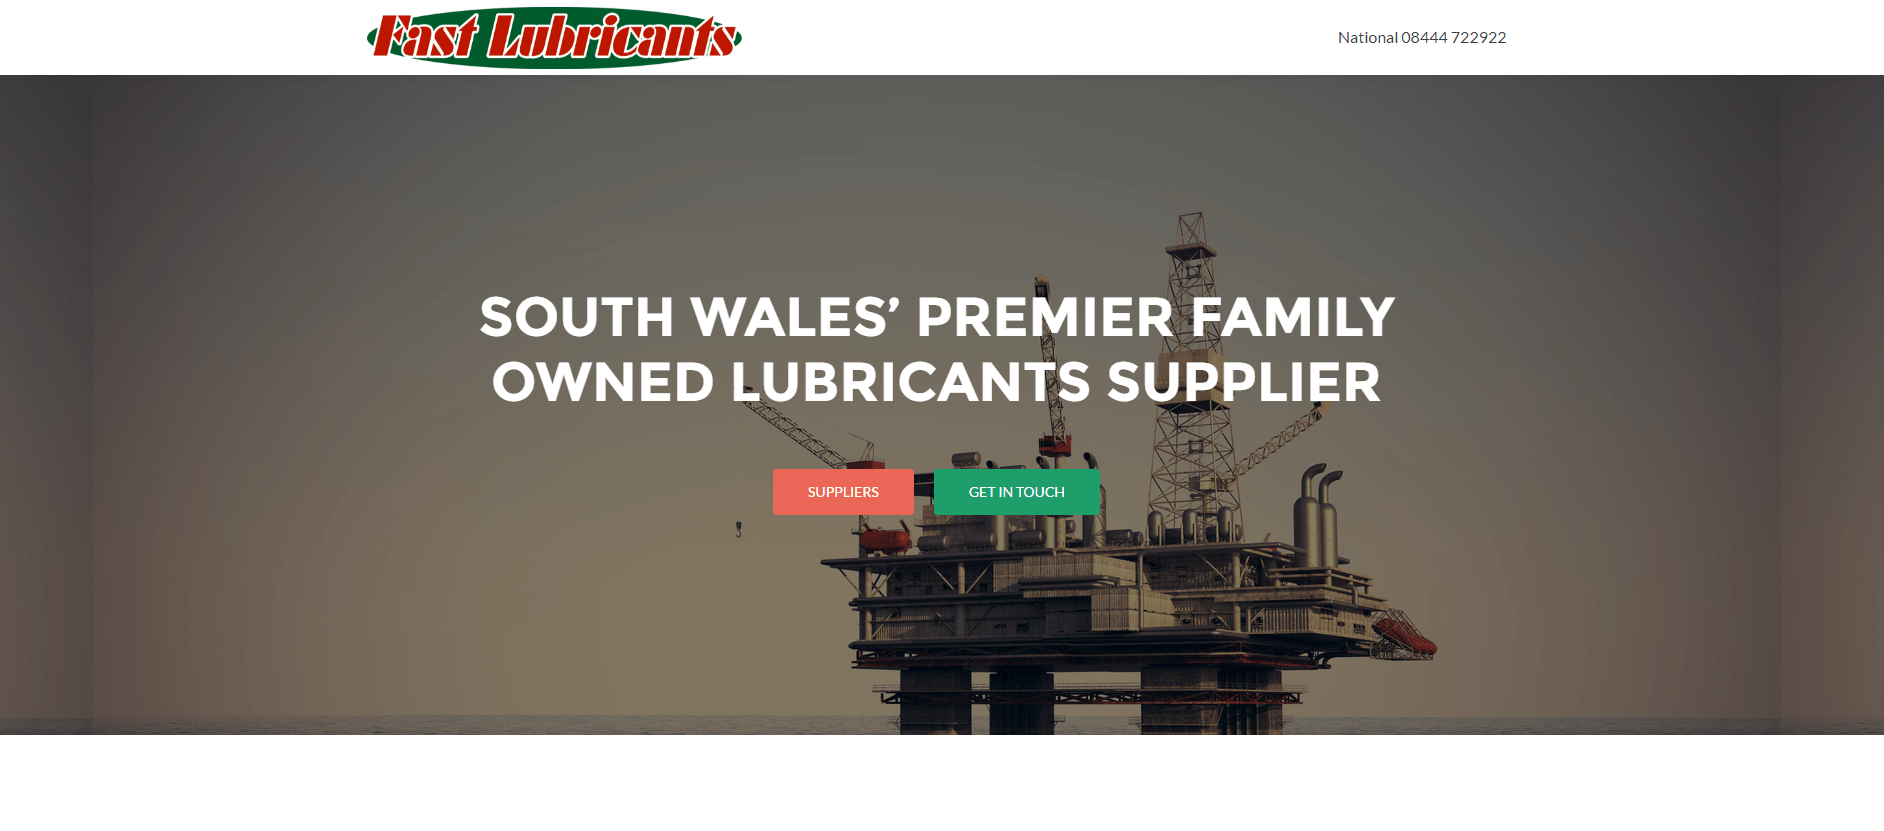 Website for Fast Lubricants